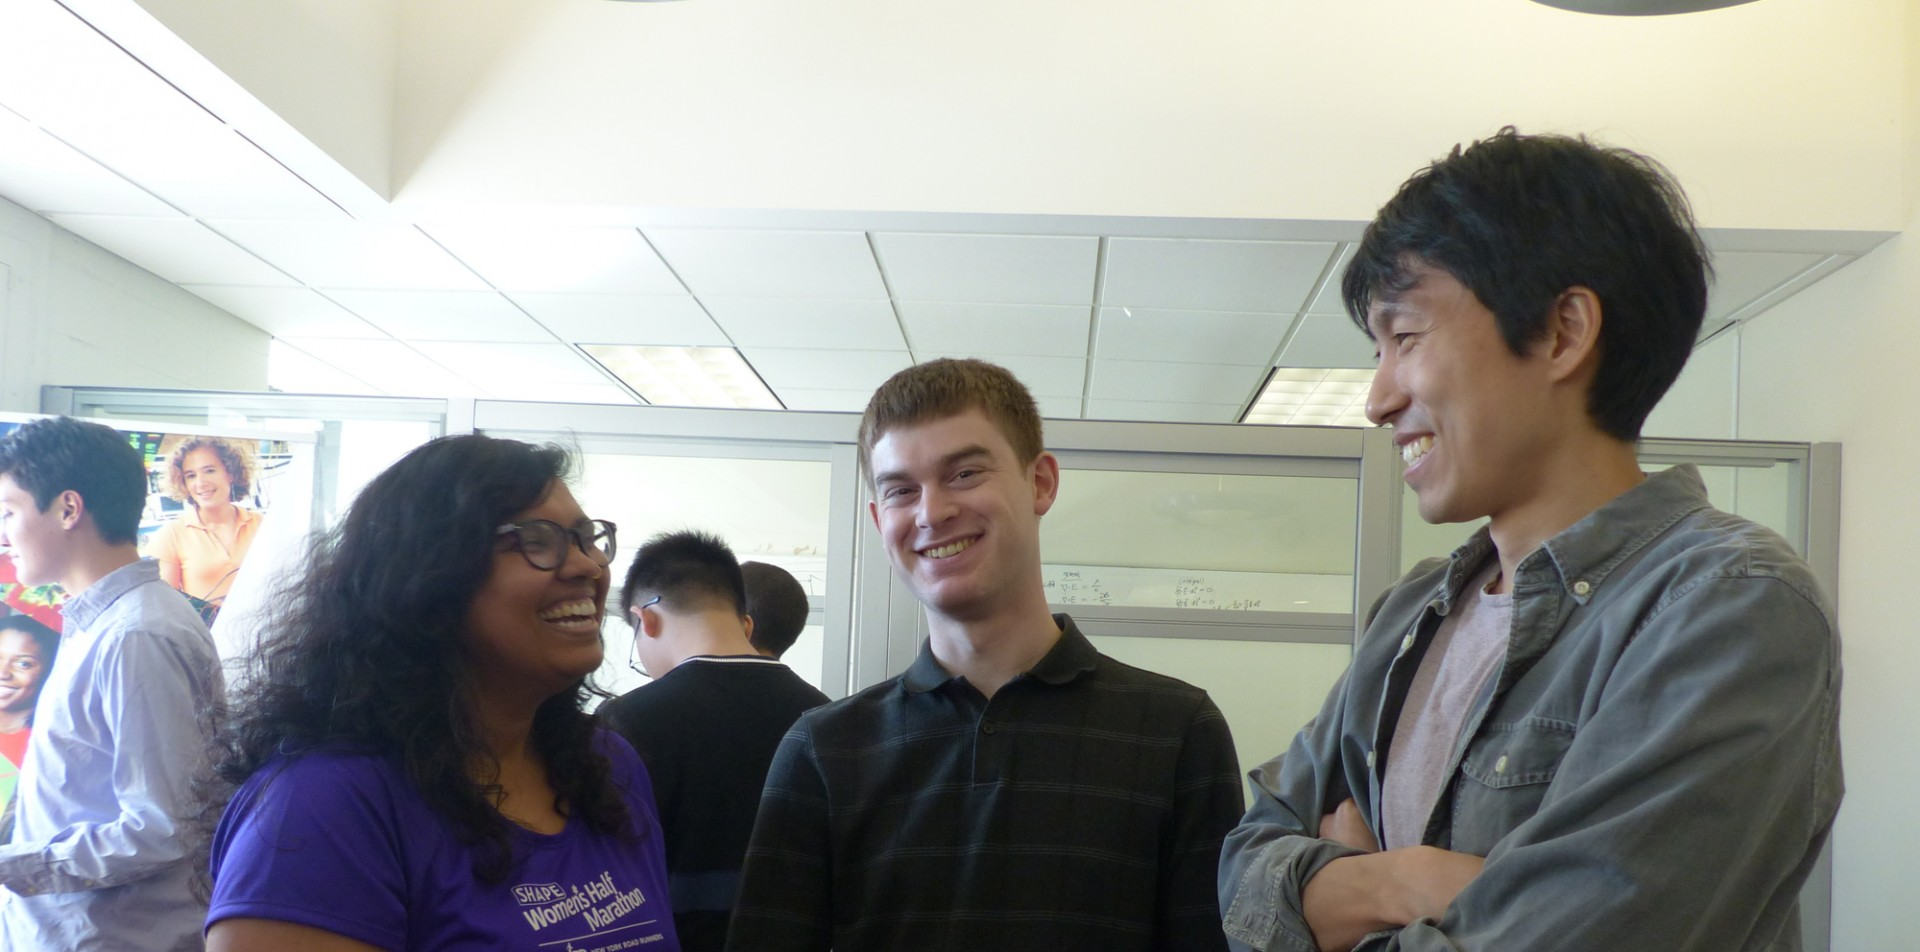 Electrical engineering graduate students socializing during coffee hours